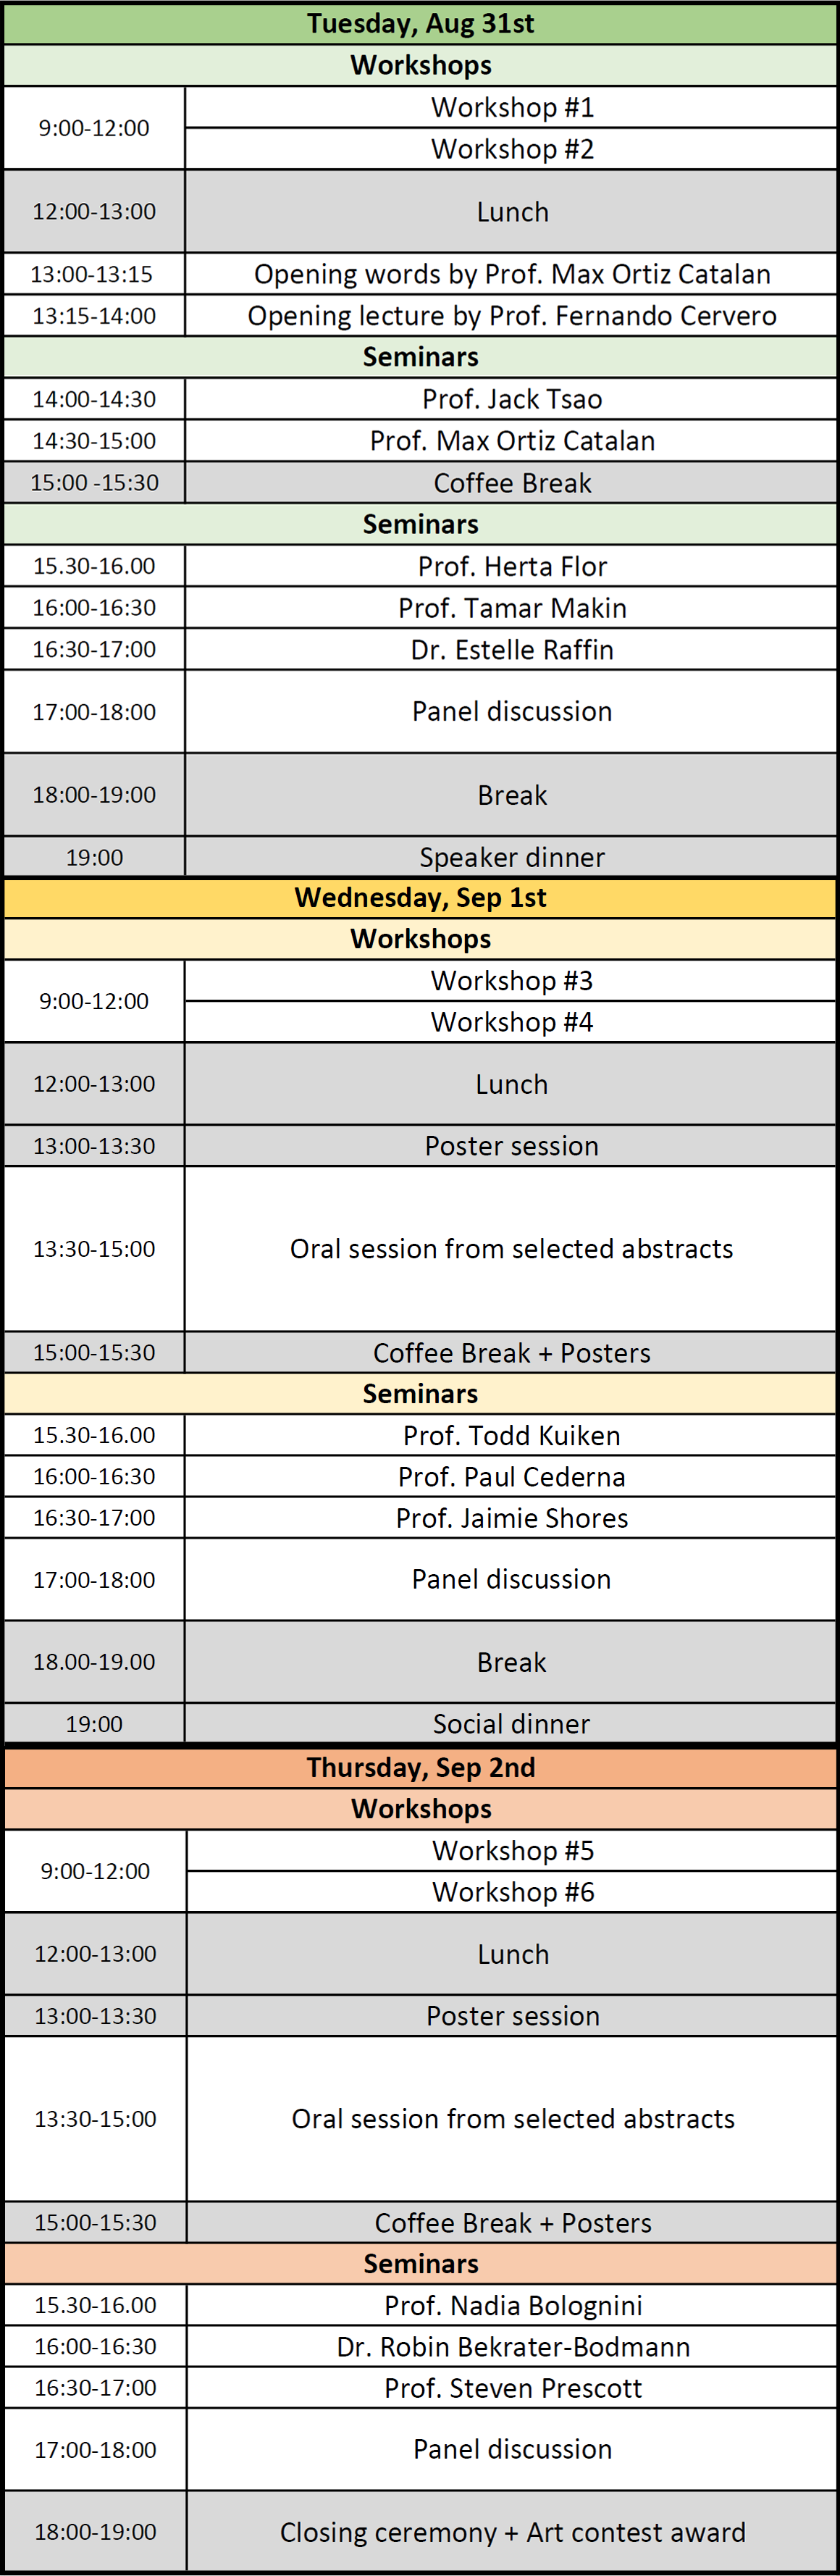 Image of Conference Program. A text summary of the conference program is available below